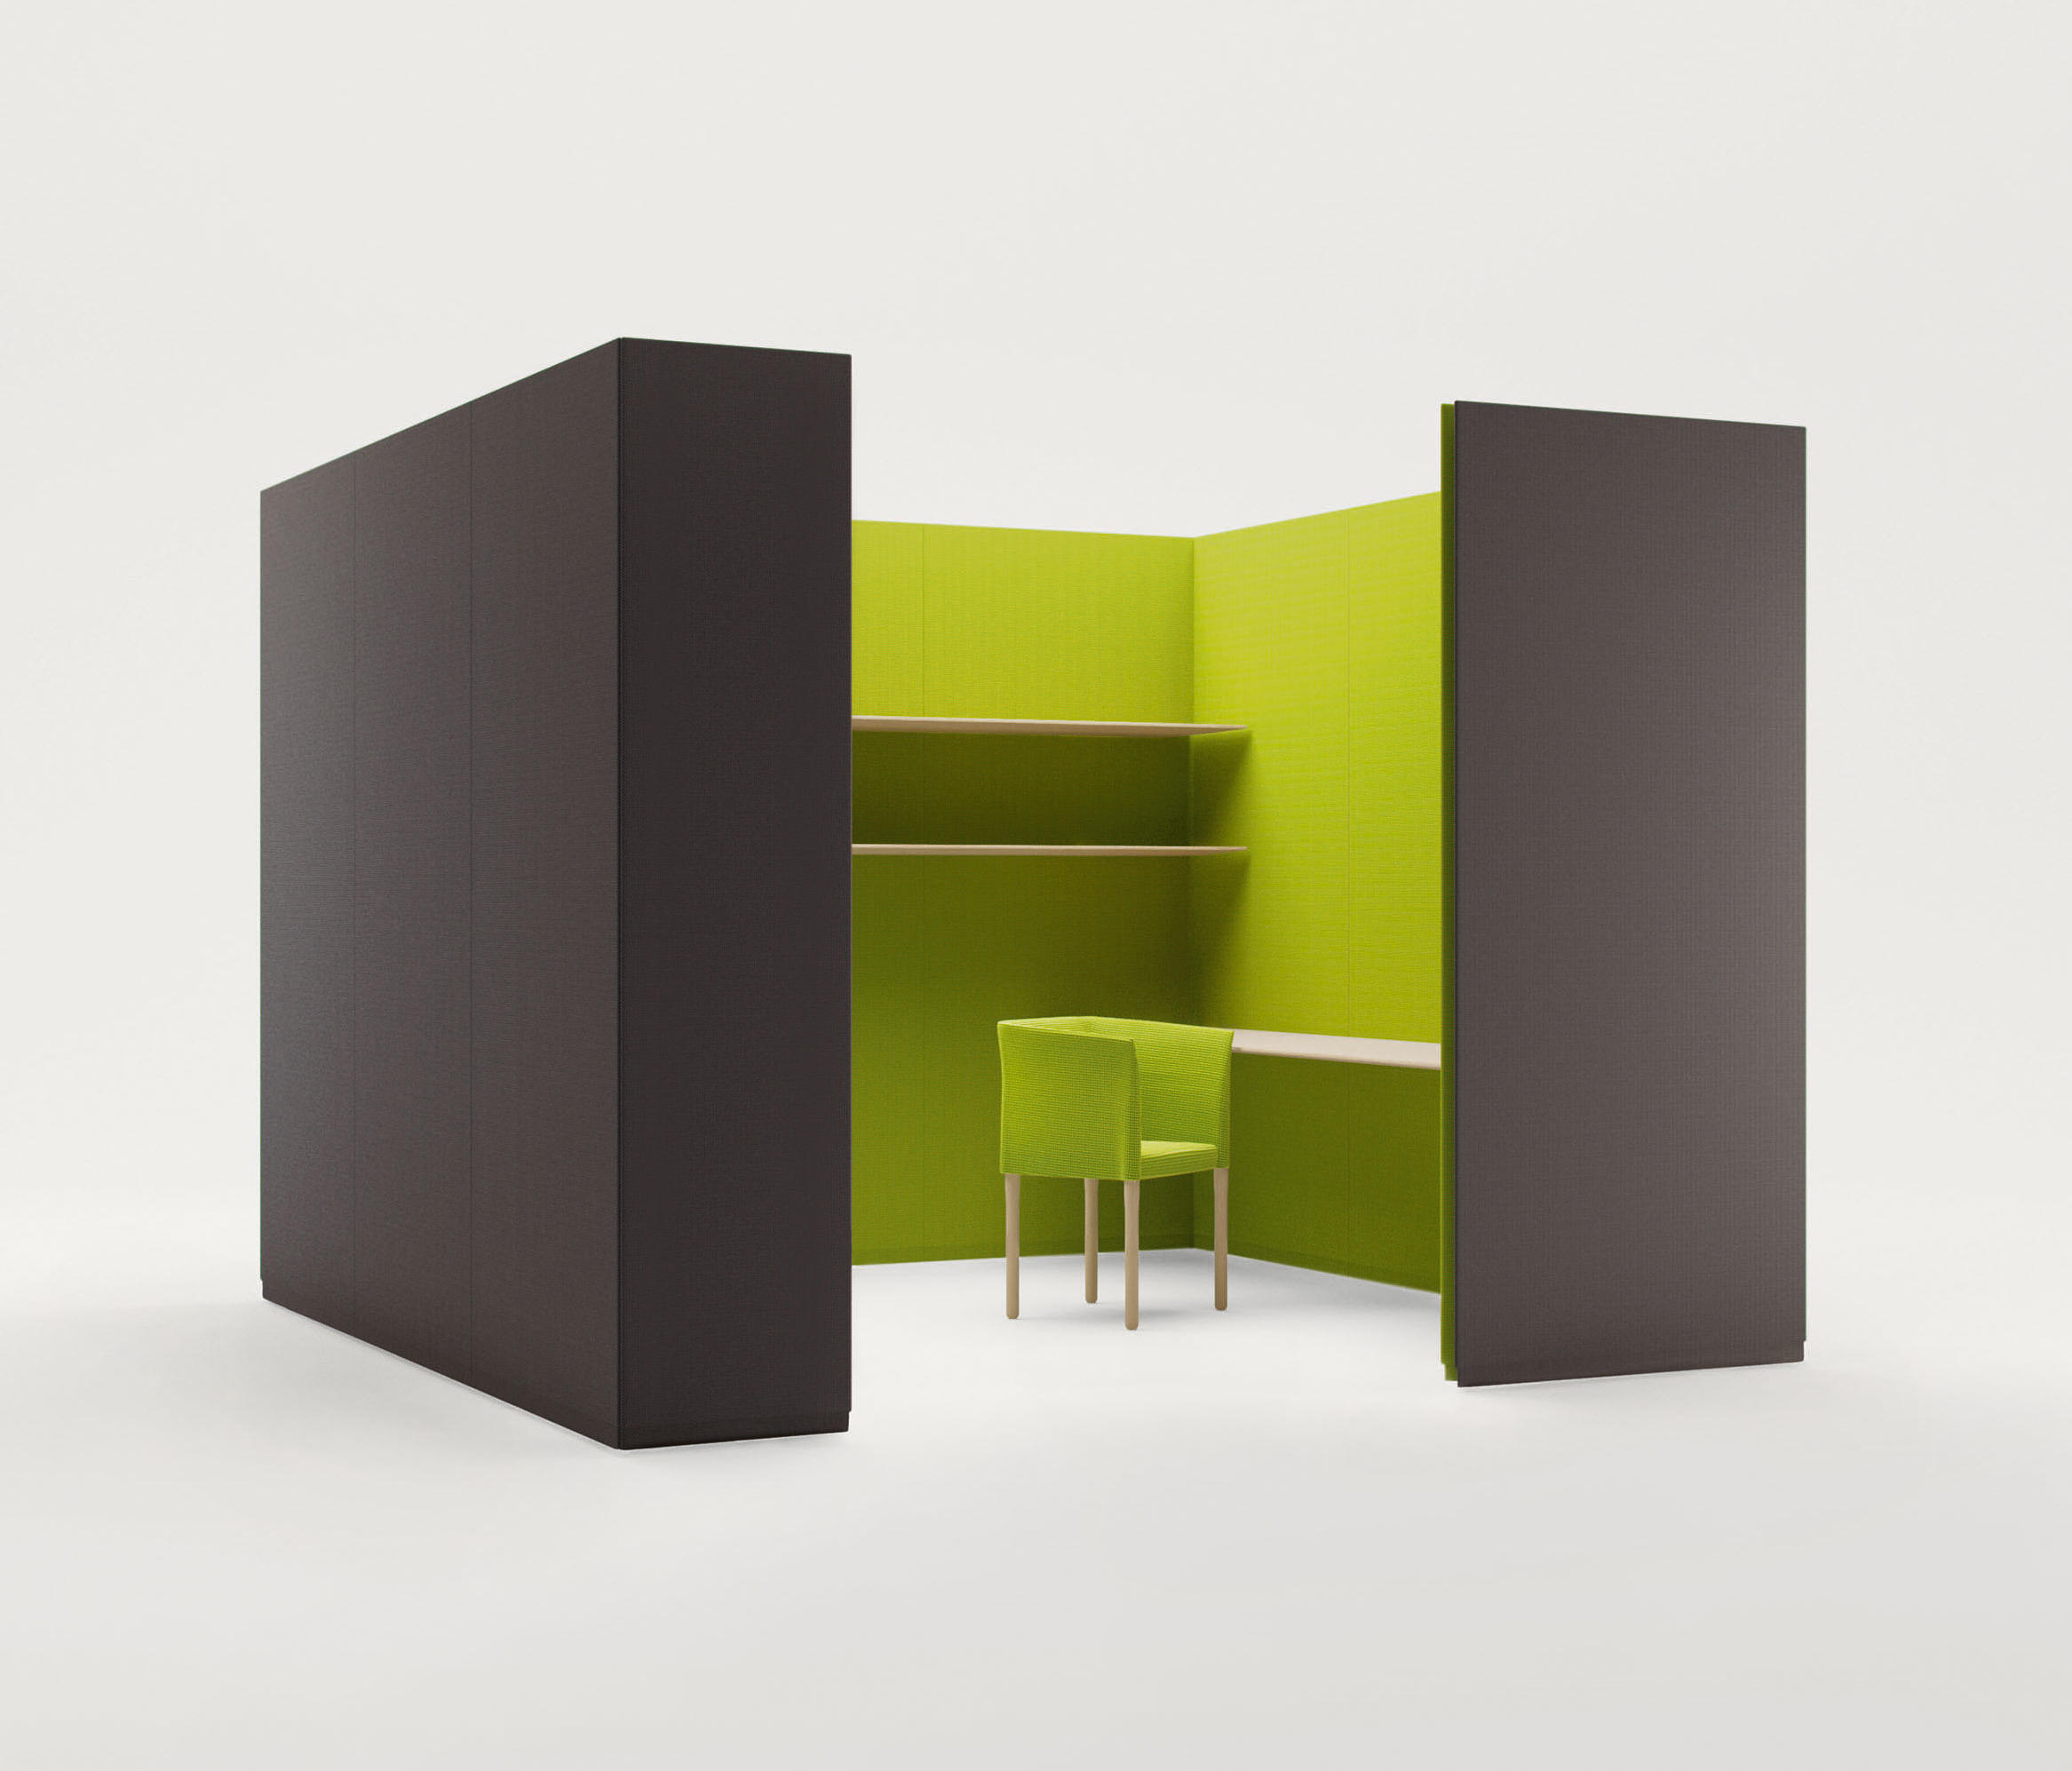 office divider wall. Office Separators. Build By Paola Lenti | Space Dividers Separators D Divider Wall E